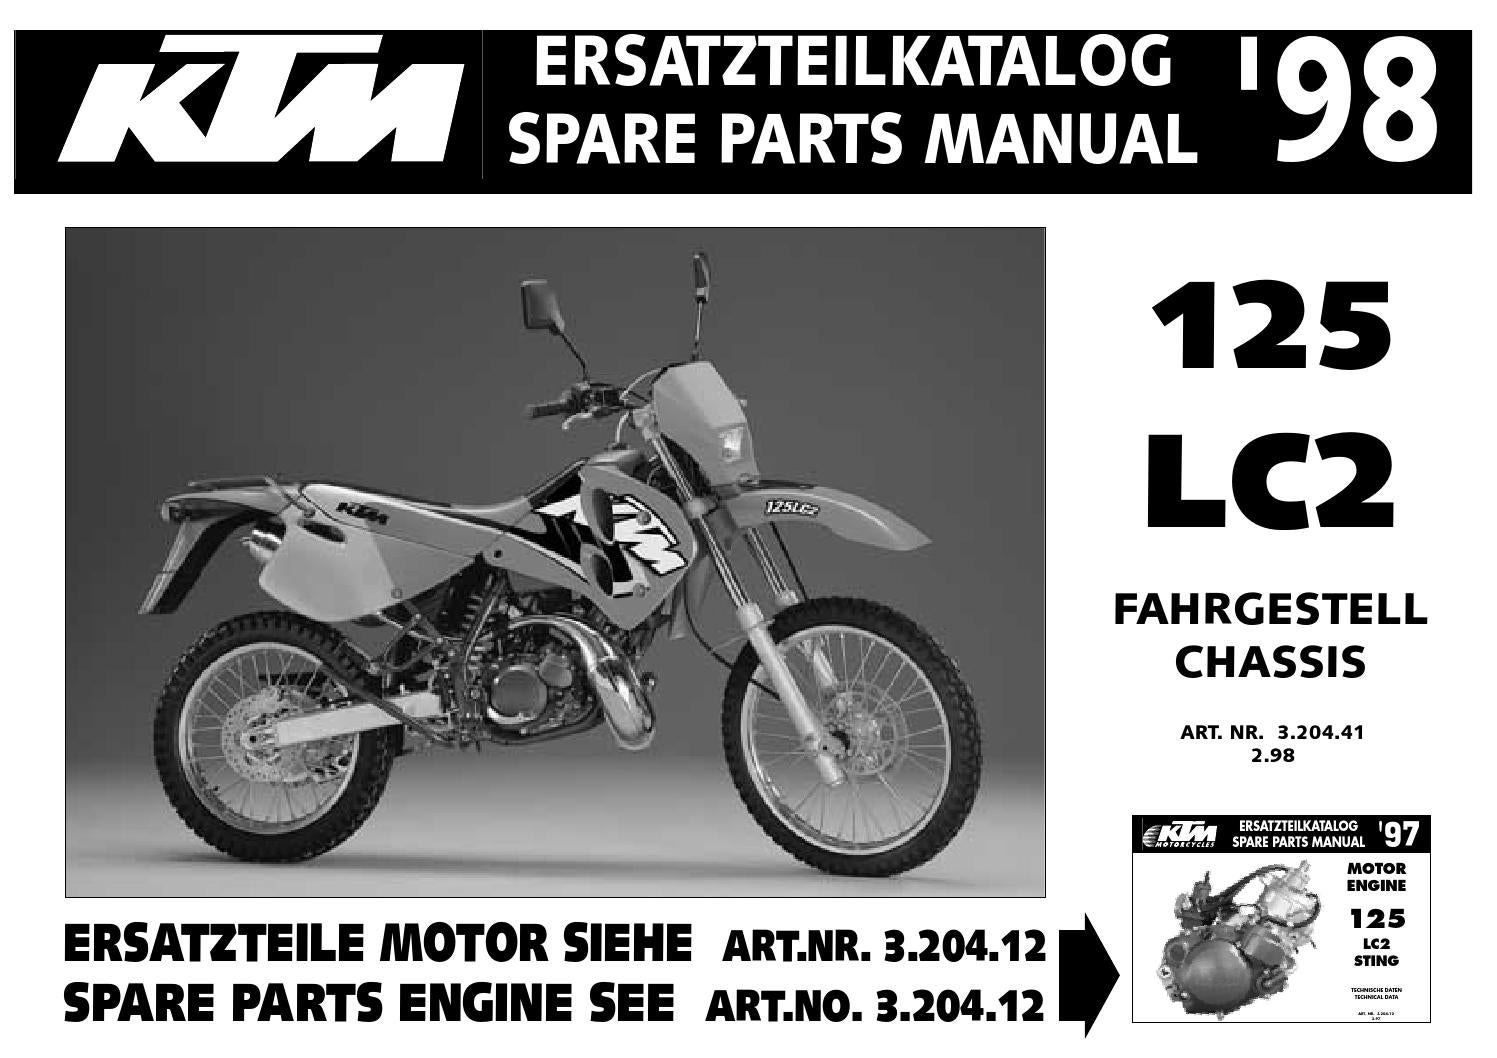 Etk fg 125lc2 98 320441 by Commonwealth Motorcycles - issuu